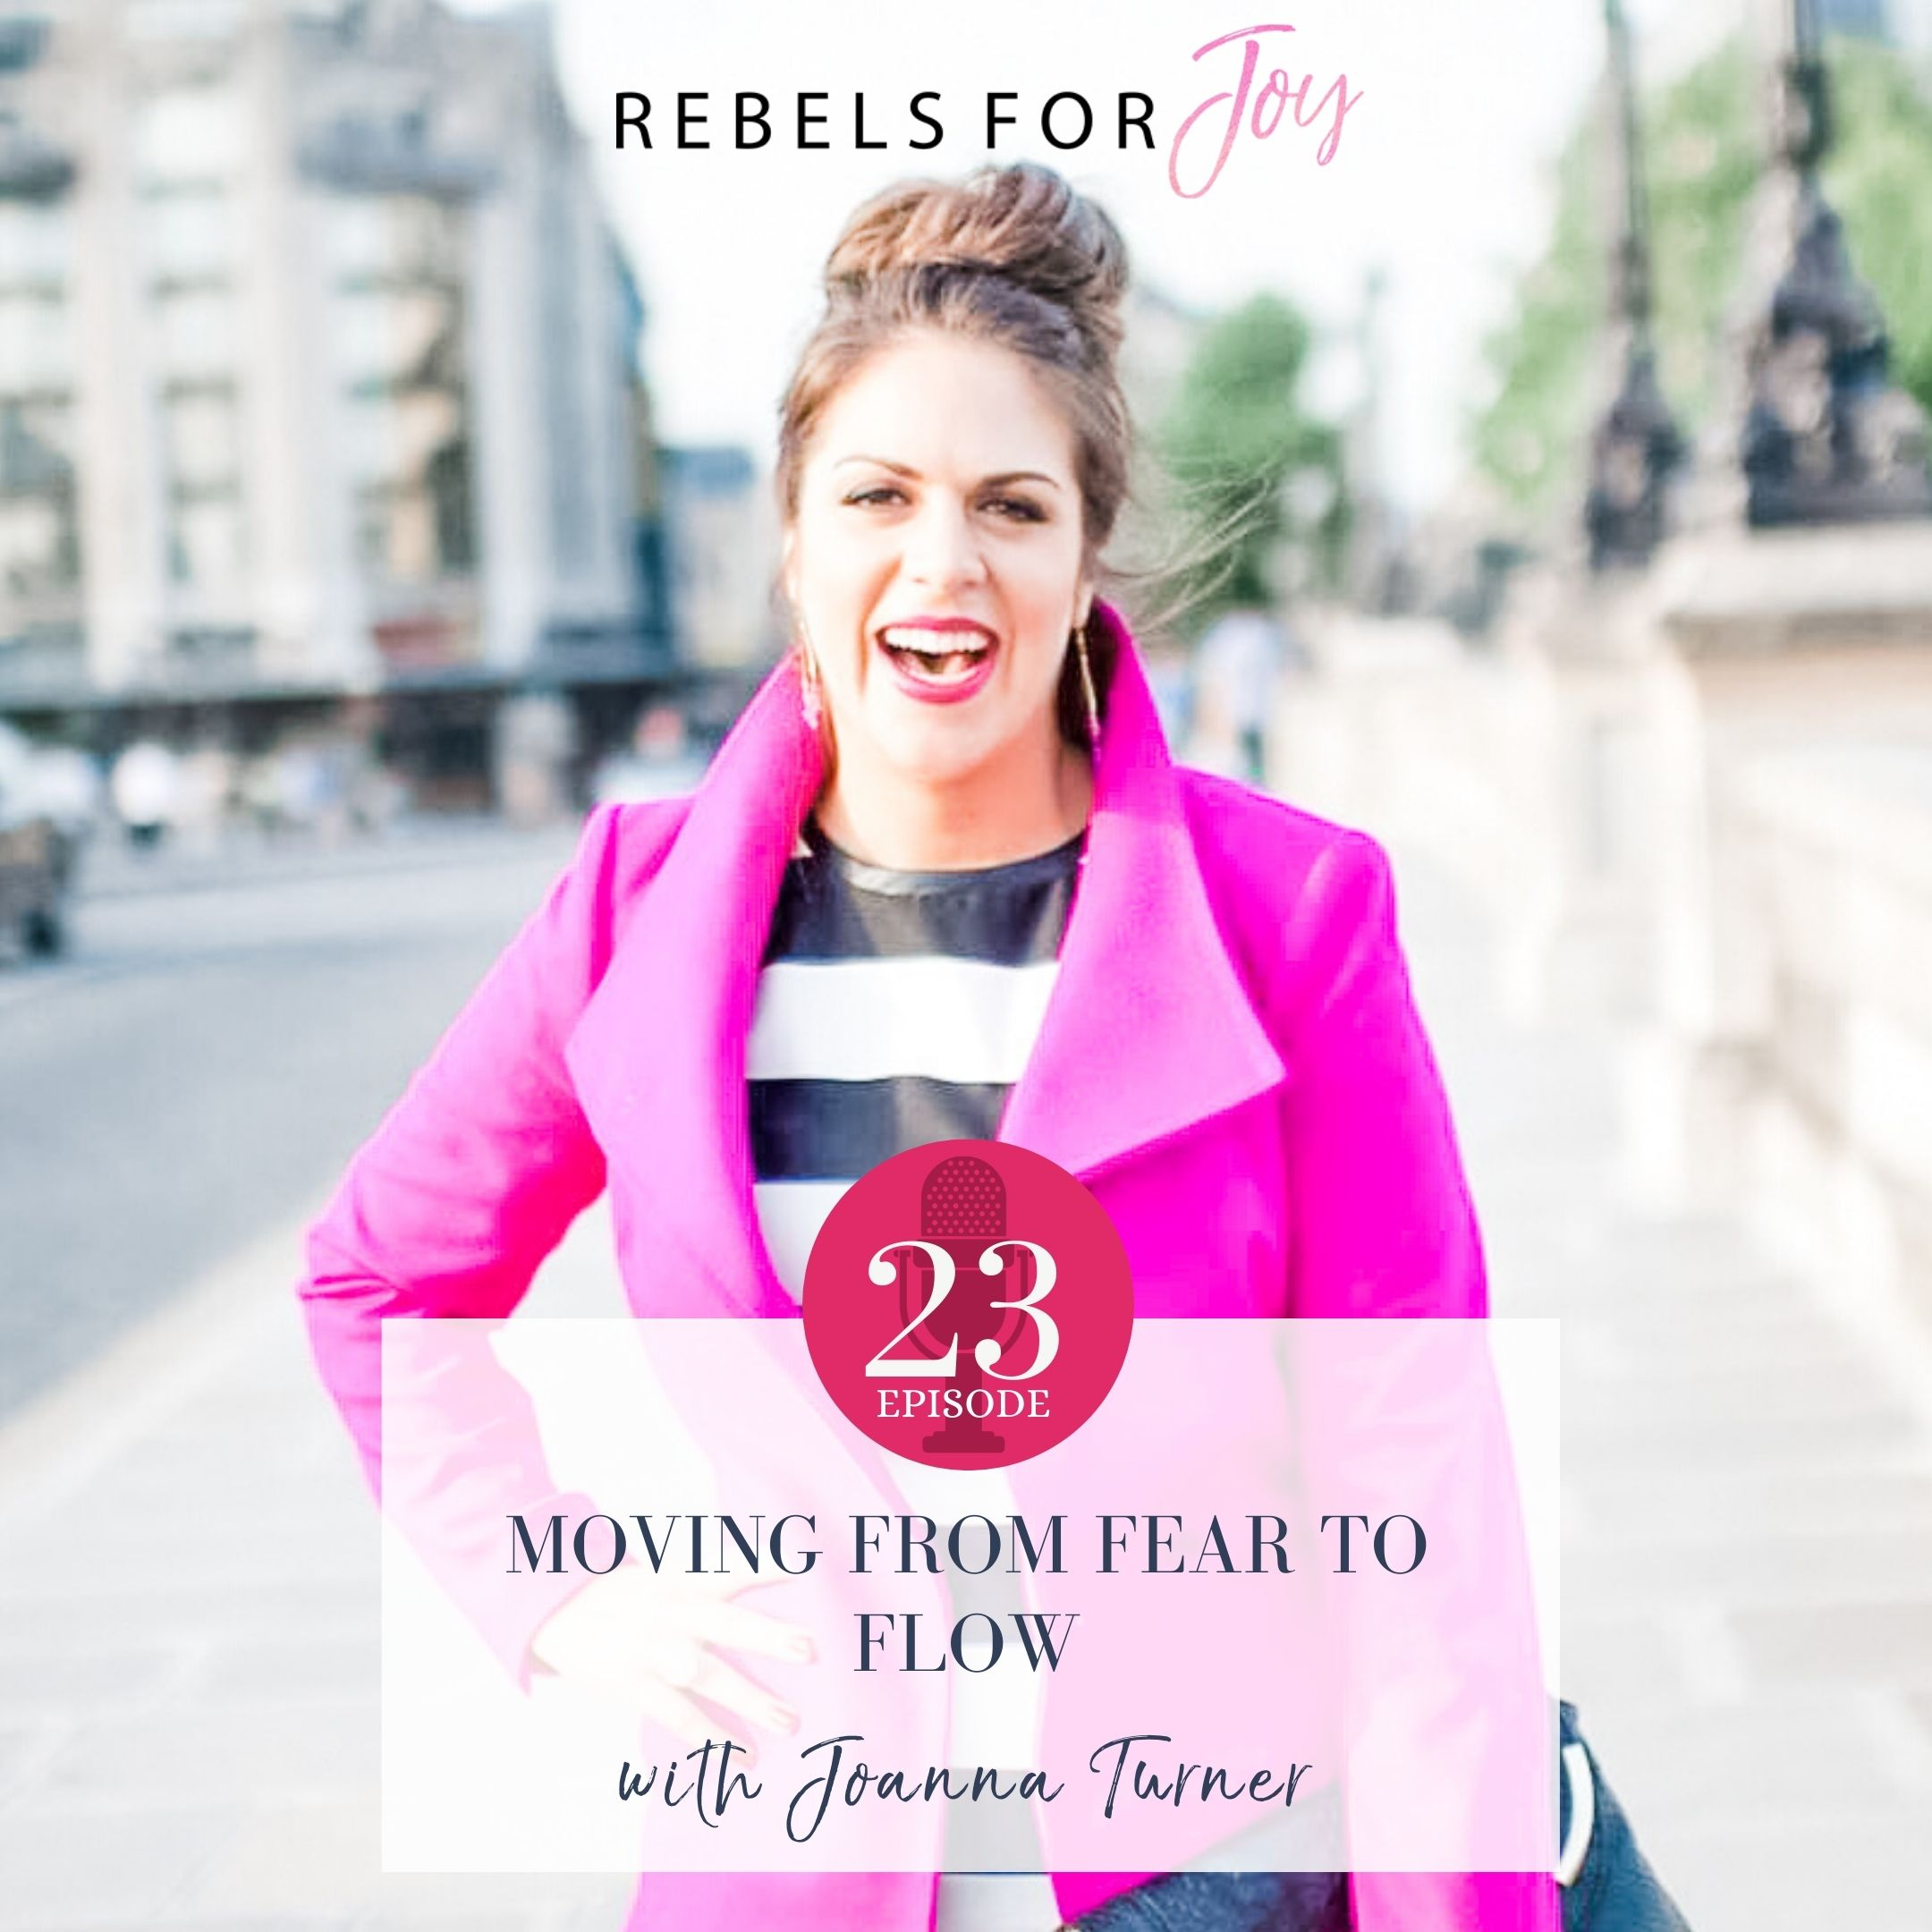 Episode 23: Moving from Fear to Flow